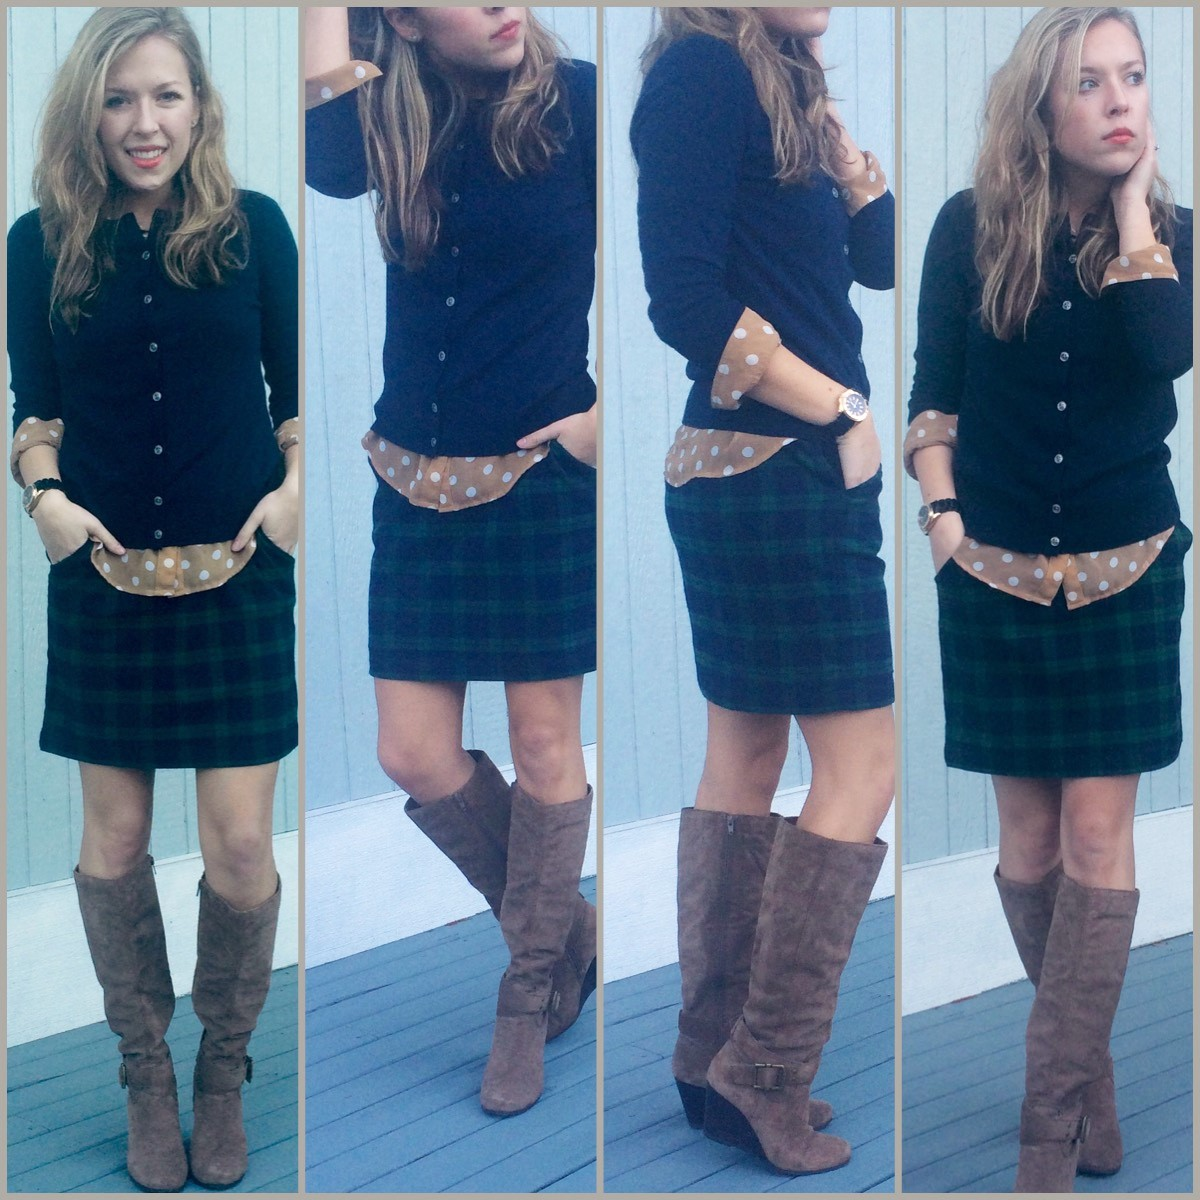 Polka dots and plaid winter look- Old Navy skirt and blouse, Ann Taylor cardigan and BCBG boots